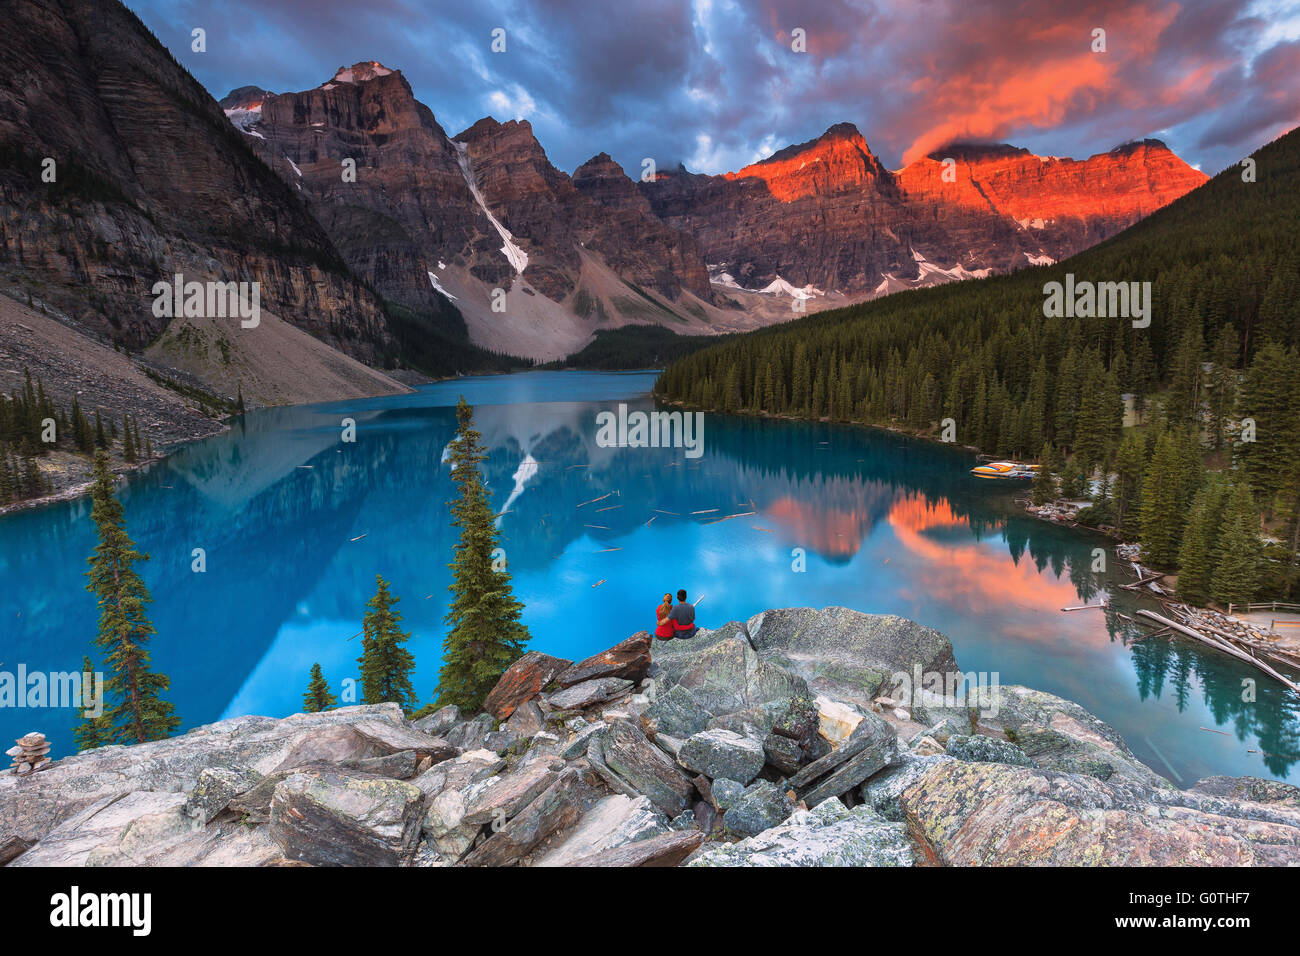 Ein junges Paar am Moraine Lake von Sunrise. Banff Nationalpark, Alberta, Kanada. Stockbild